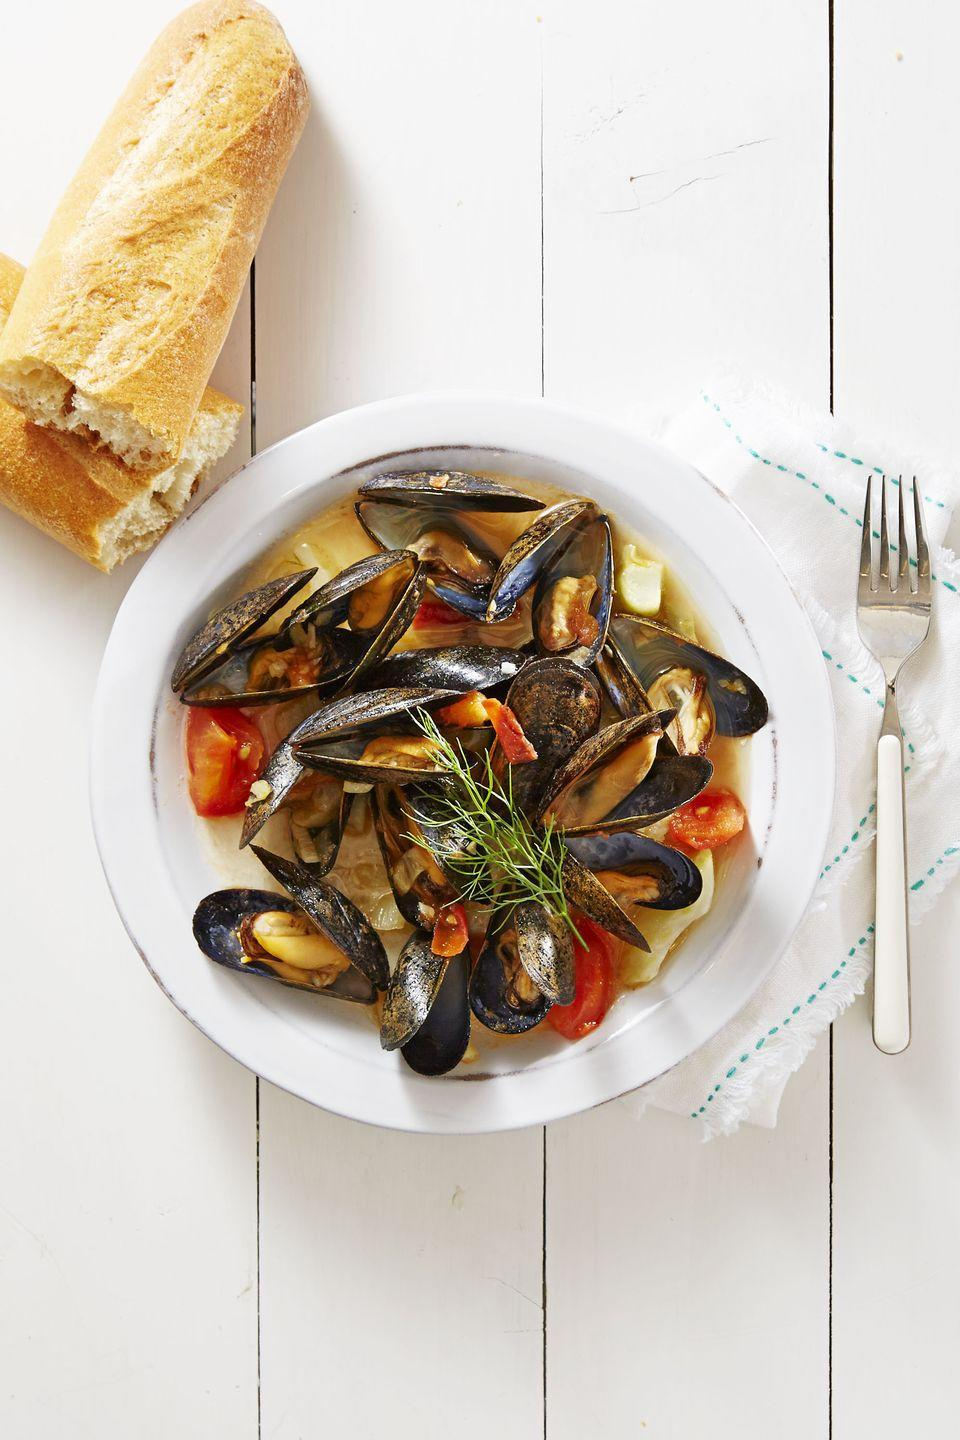 """<p>A crowd-friendly first course that everyone can get behind! These tender mussels bust open in a liqueur-based broth in just 20 minutes.</p><p><a href=""""https://www.goodhousekeeping.com/food-recipes/a39949/mussels-provencal-recipe/"""" rel=""""nofollow noopener"""" target=""""_blank"""" data-ylk=""""slk:Get the recipe for Mussels Provençal »"""" class=""""link rapid-noclick-resp""""><em>Get the recipe for Mussels Provençal »</em></a><br></p>"""